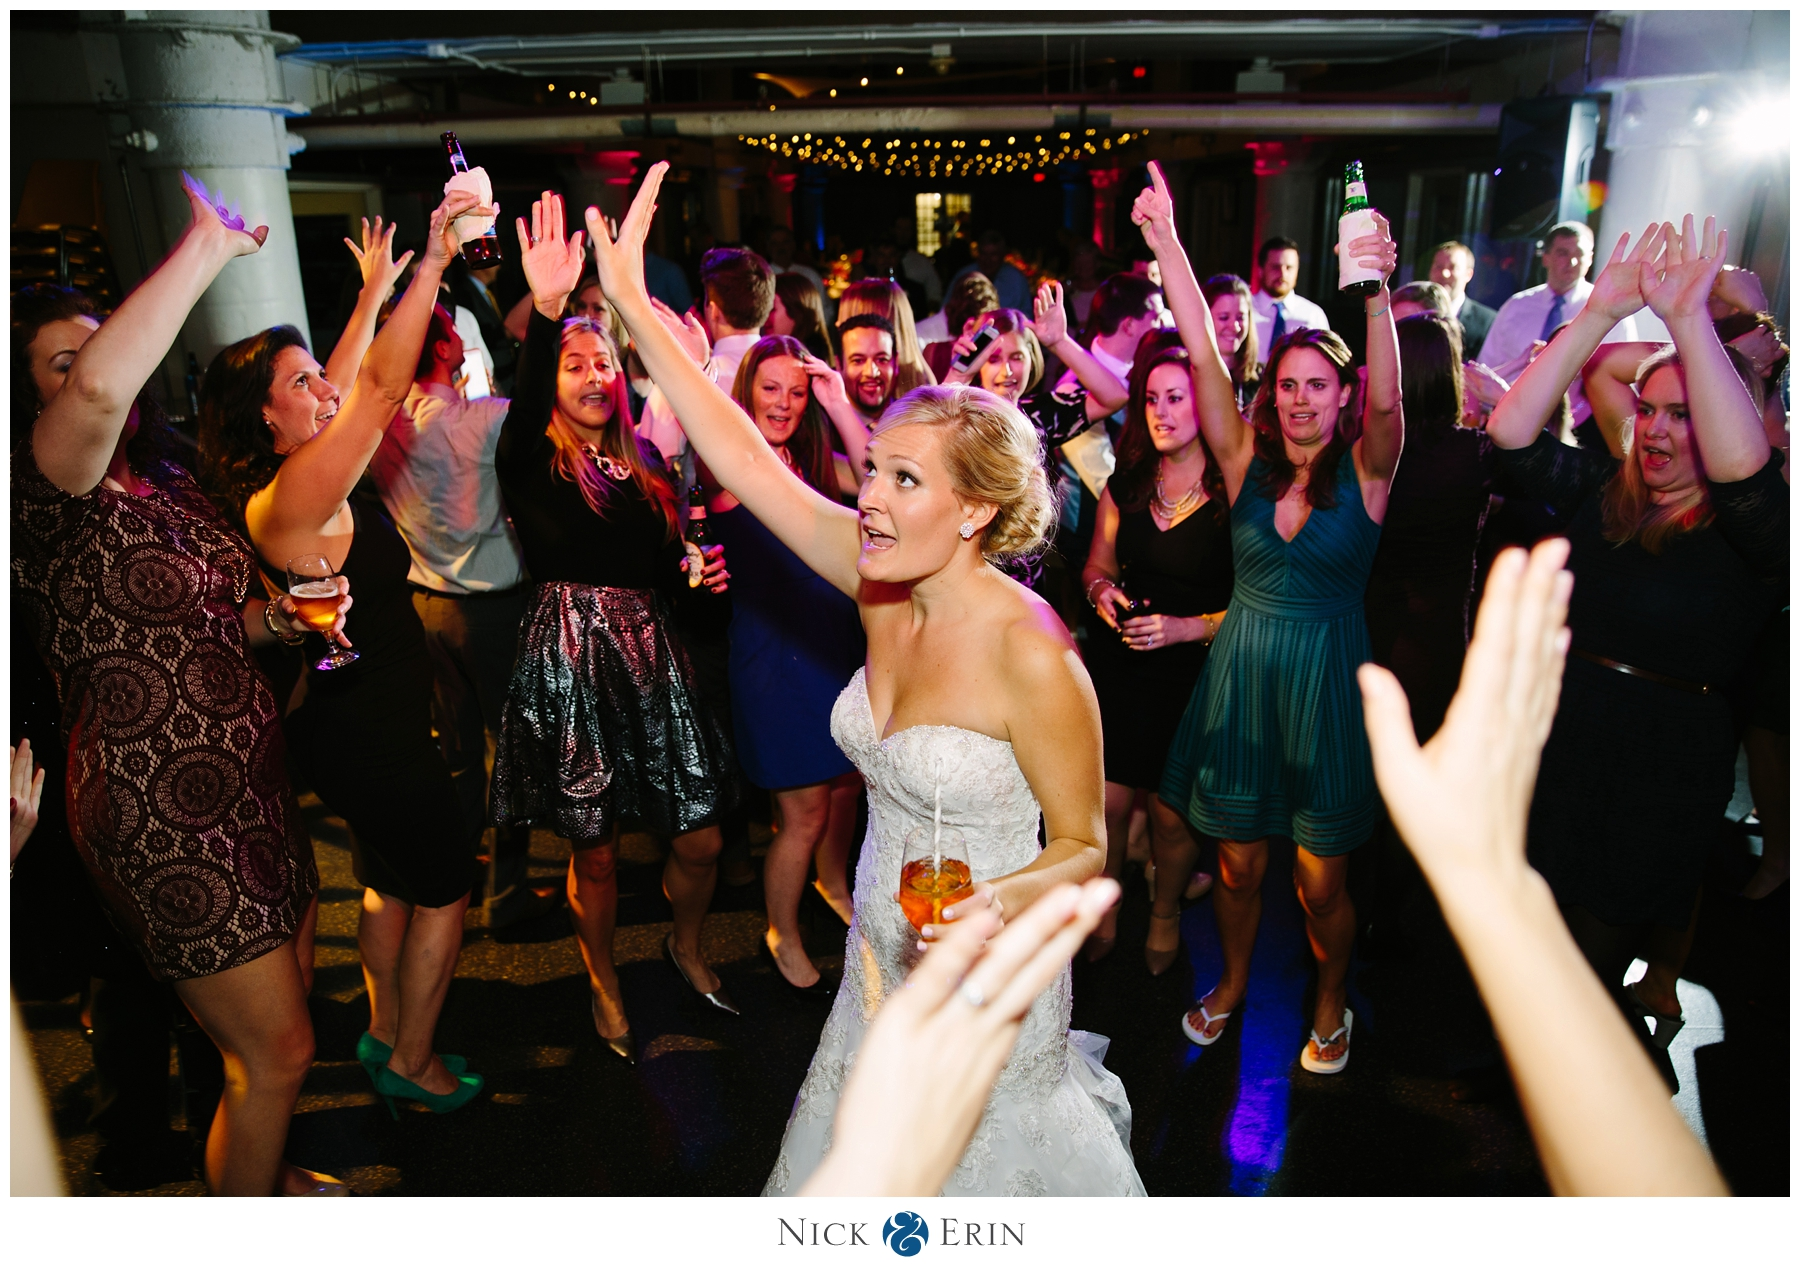 Donner_Photography_Torpedo Factory Wedding_Courtney and Scott_0061